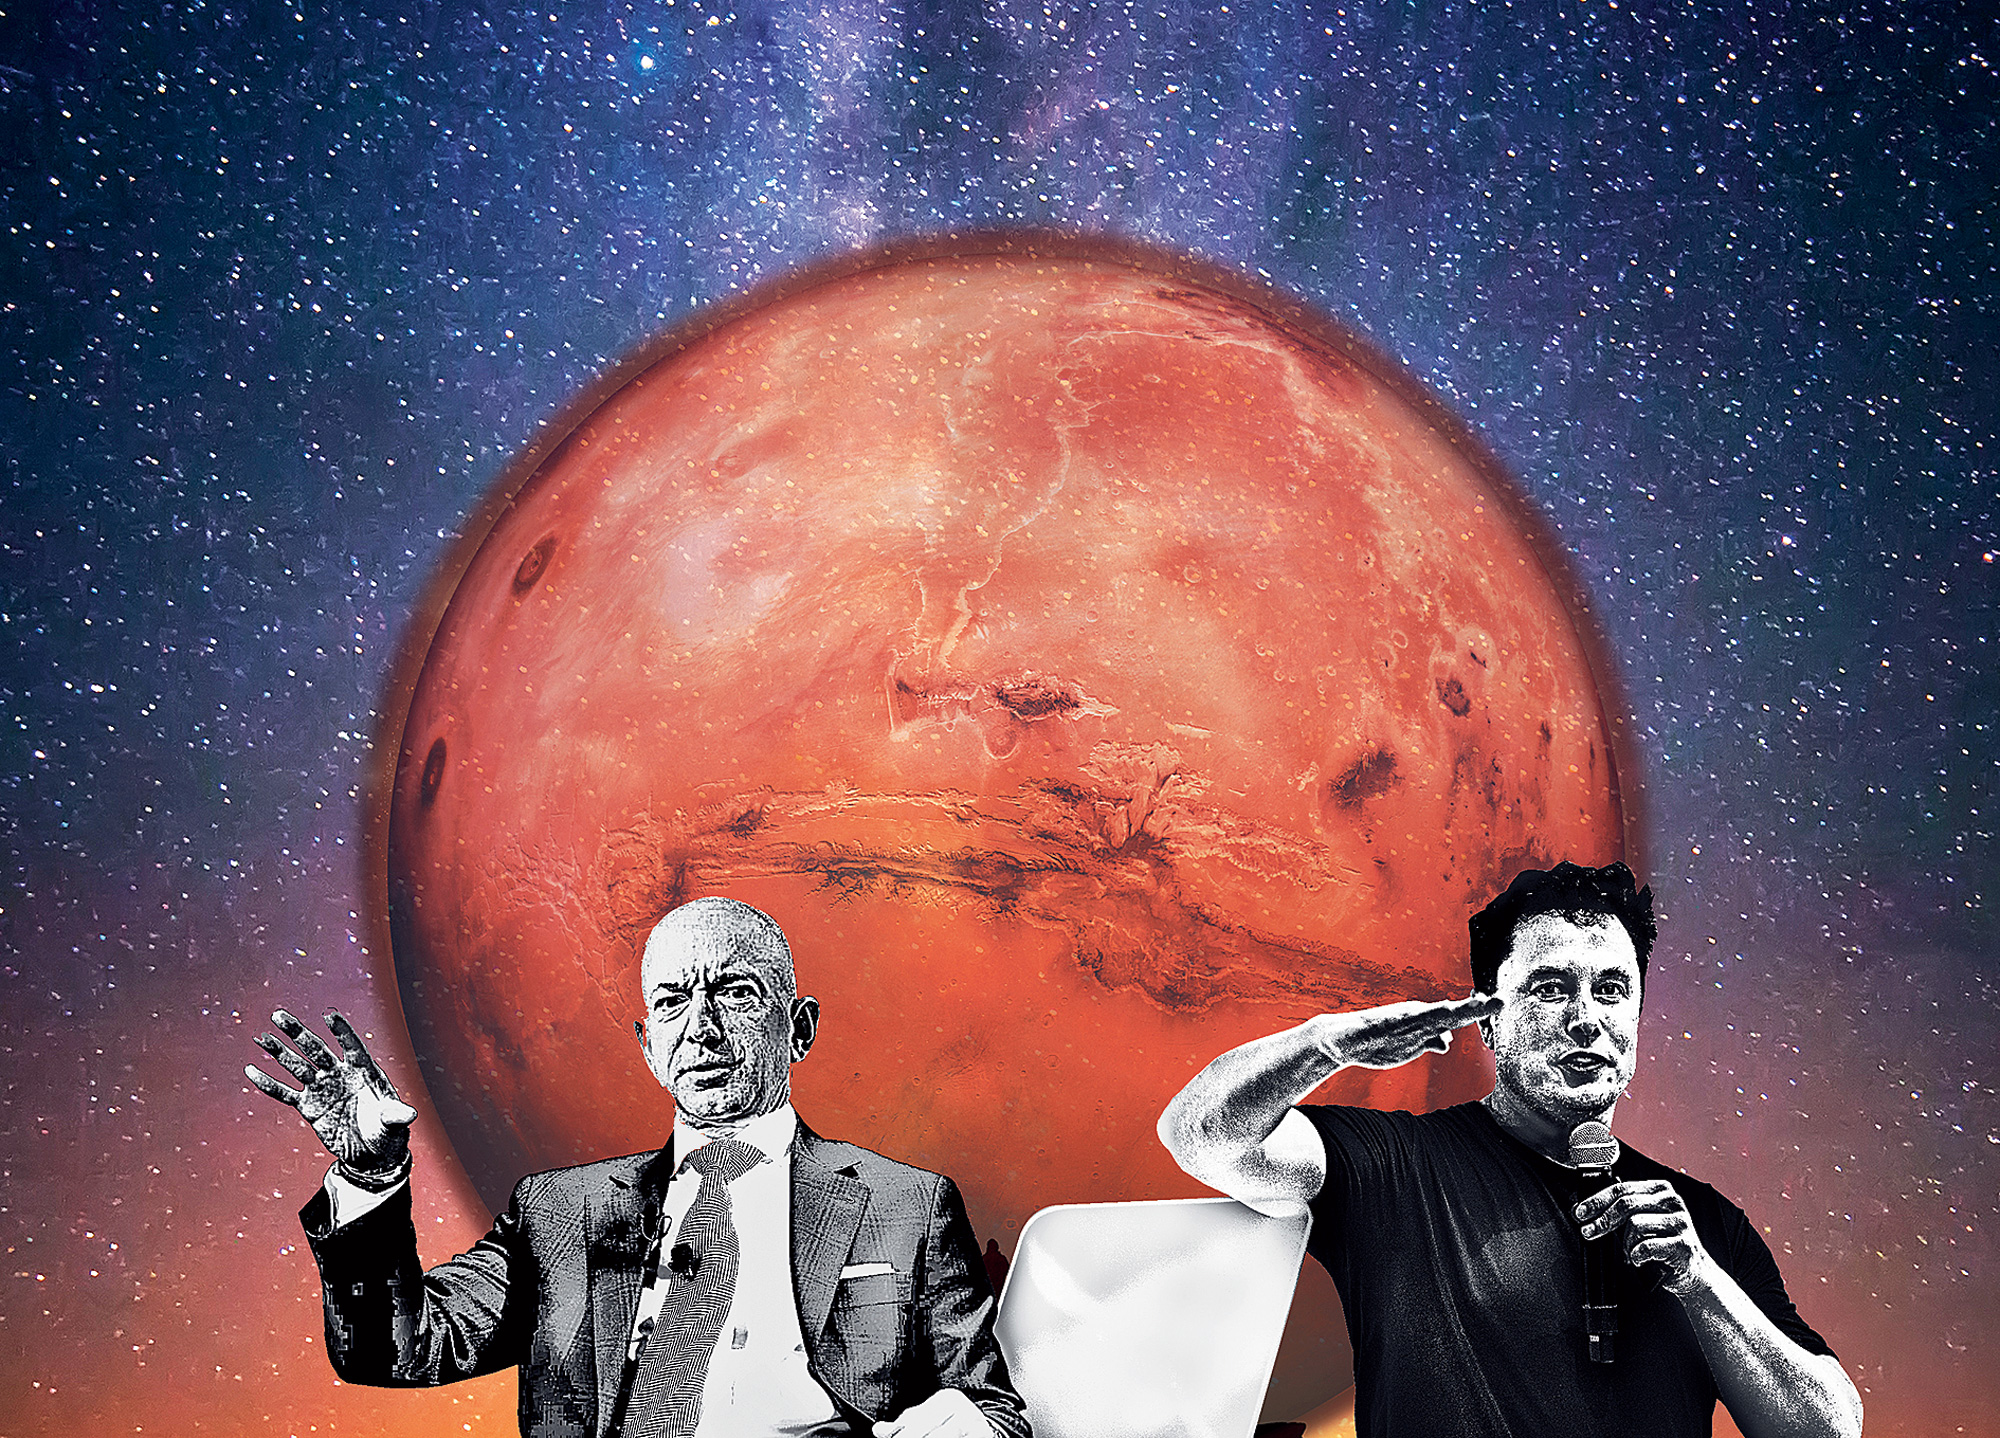 Billionaires Elon Musk and Jeff Bezos want to go live on the Red Planet.